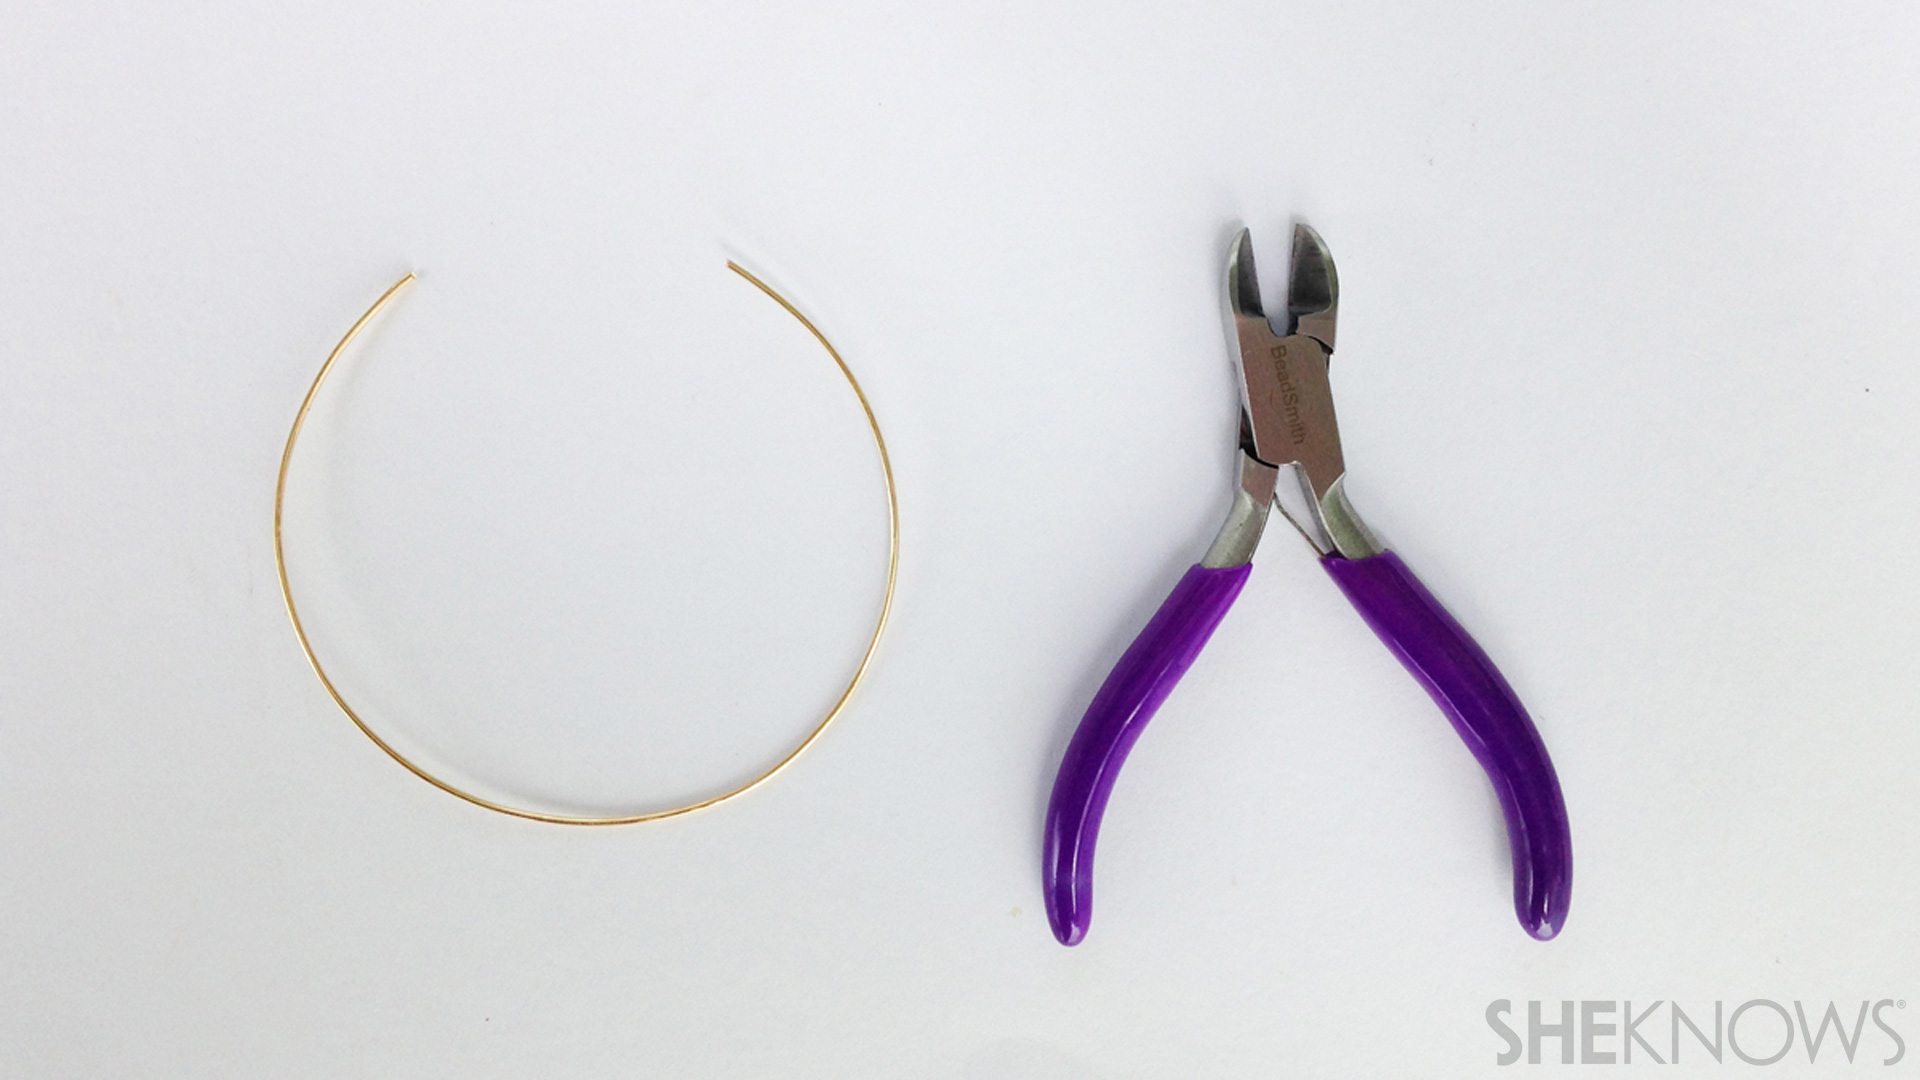 Measure and cut the wire for the bracelet